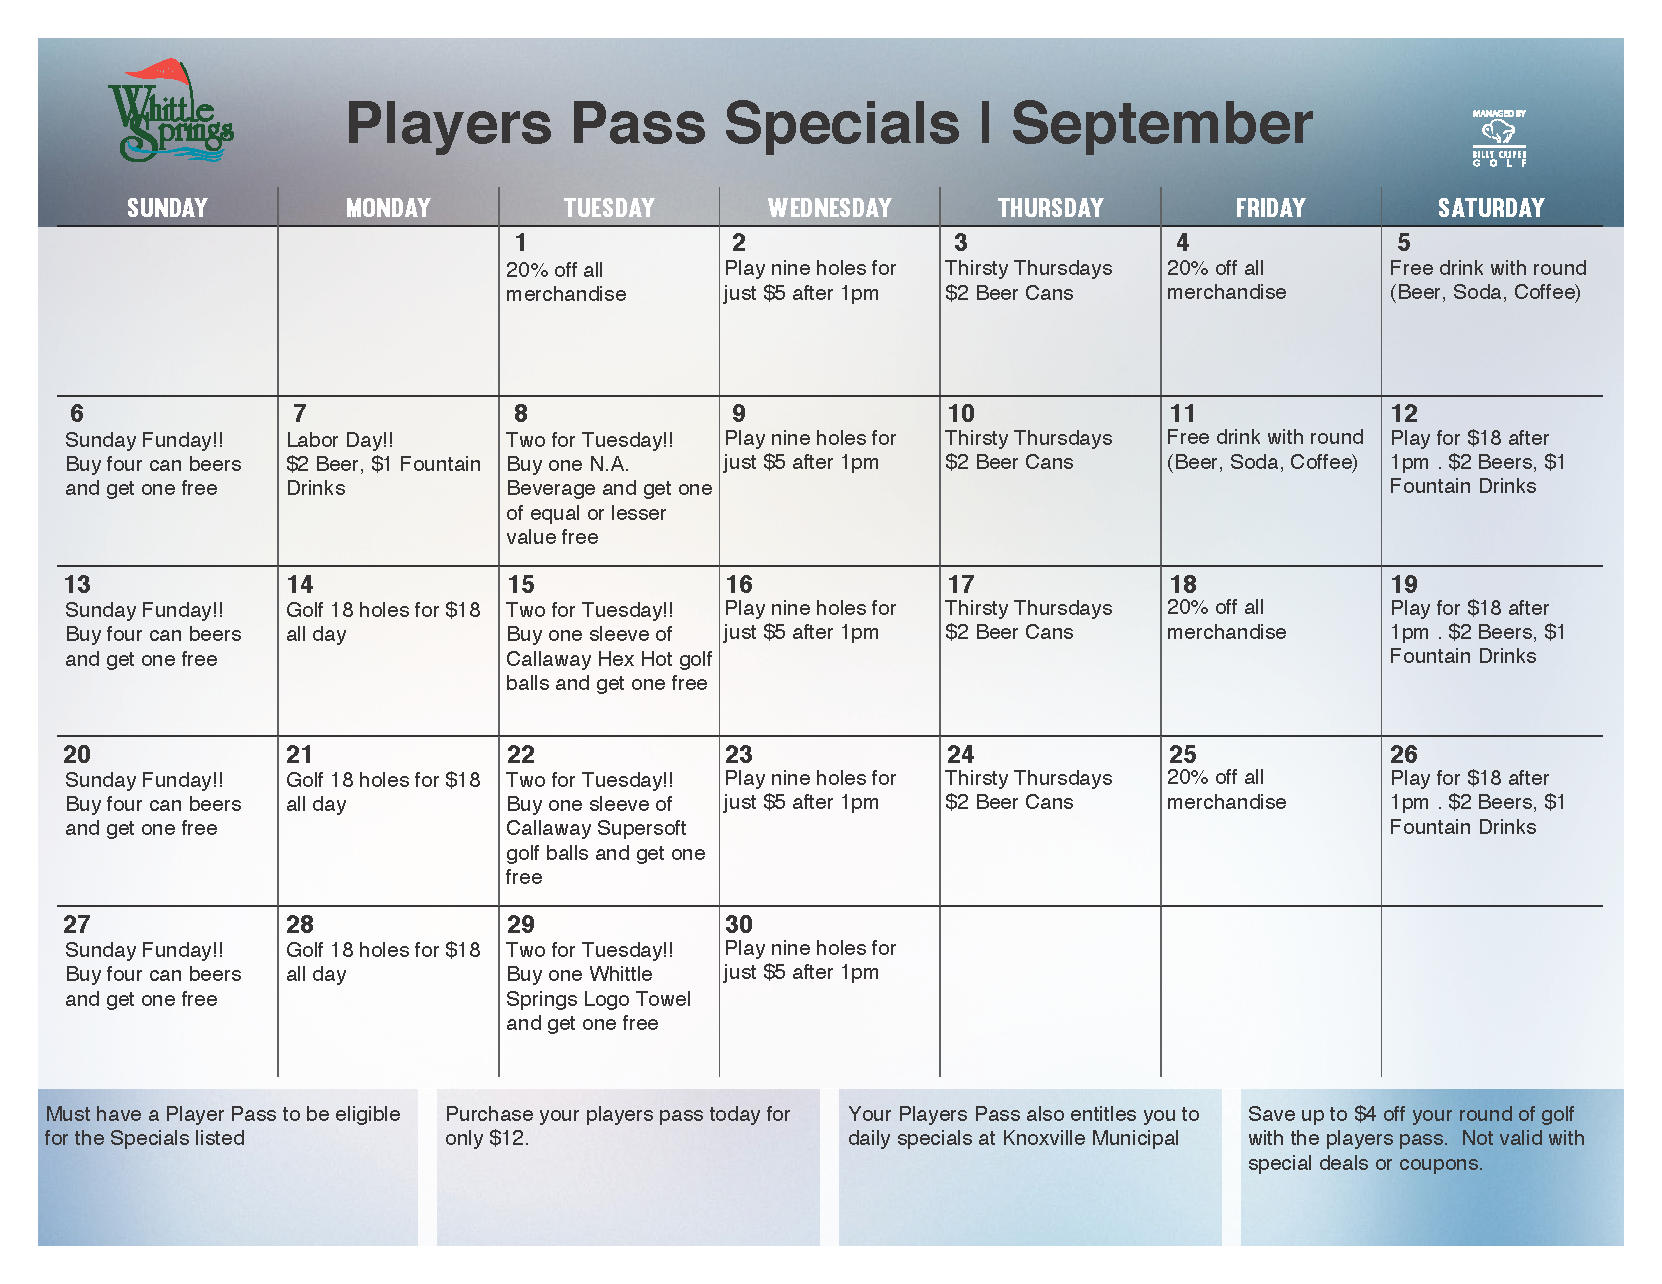 September Player's Pass cardholder golf specials at Whittle Springs Golf Club in Knoxville, TN